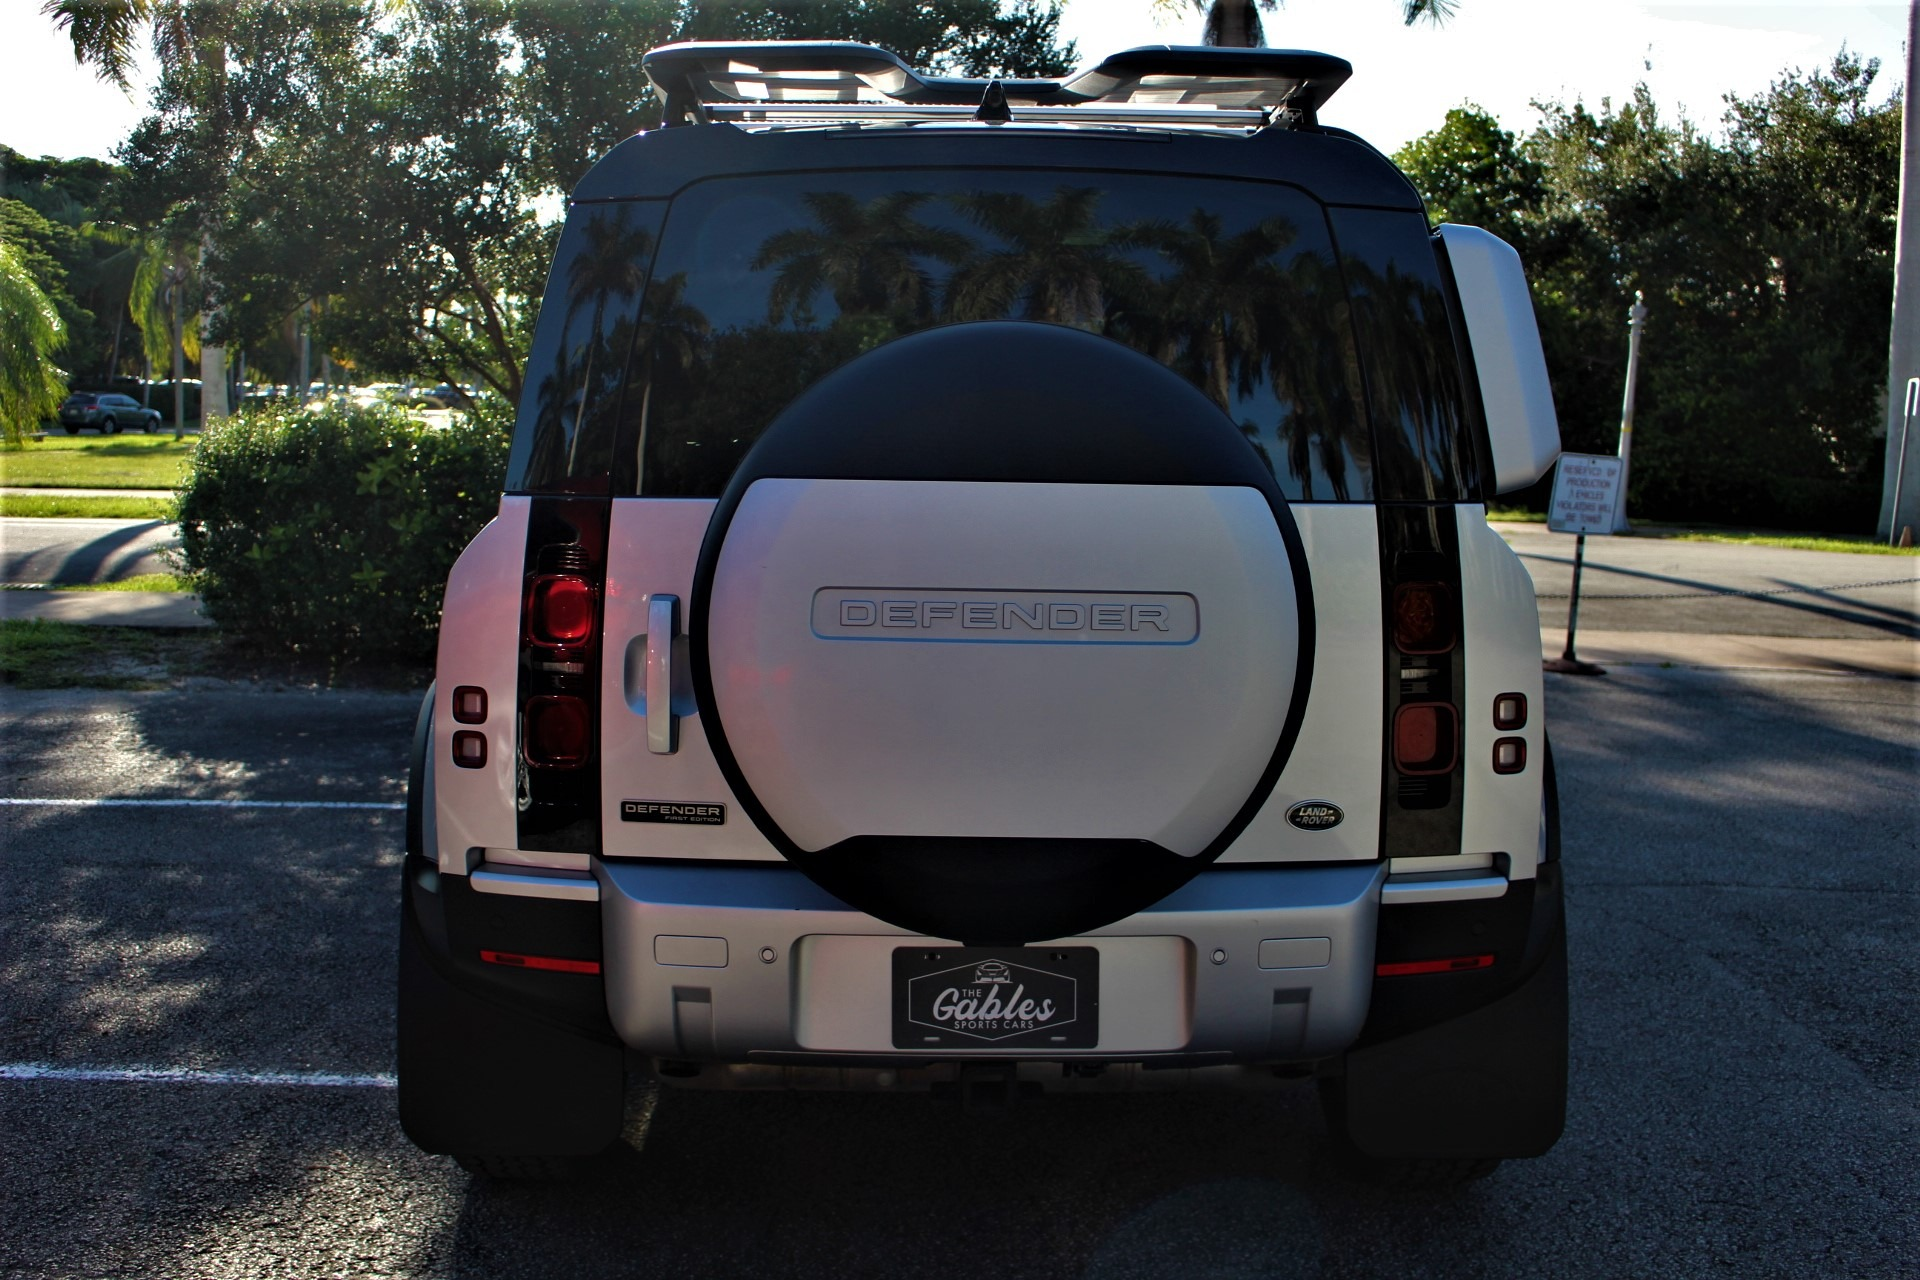 Used 2020 Land Rover Defender 110 HSE FIRST EDITION for sale $93,850 at The Gables Sports Cars in Miami FL 33146 4